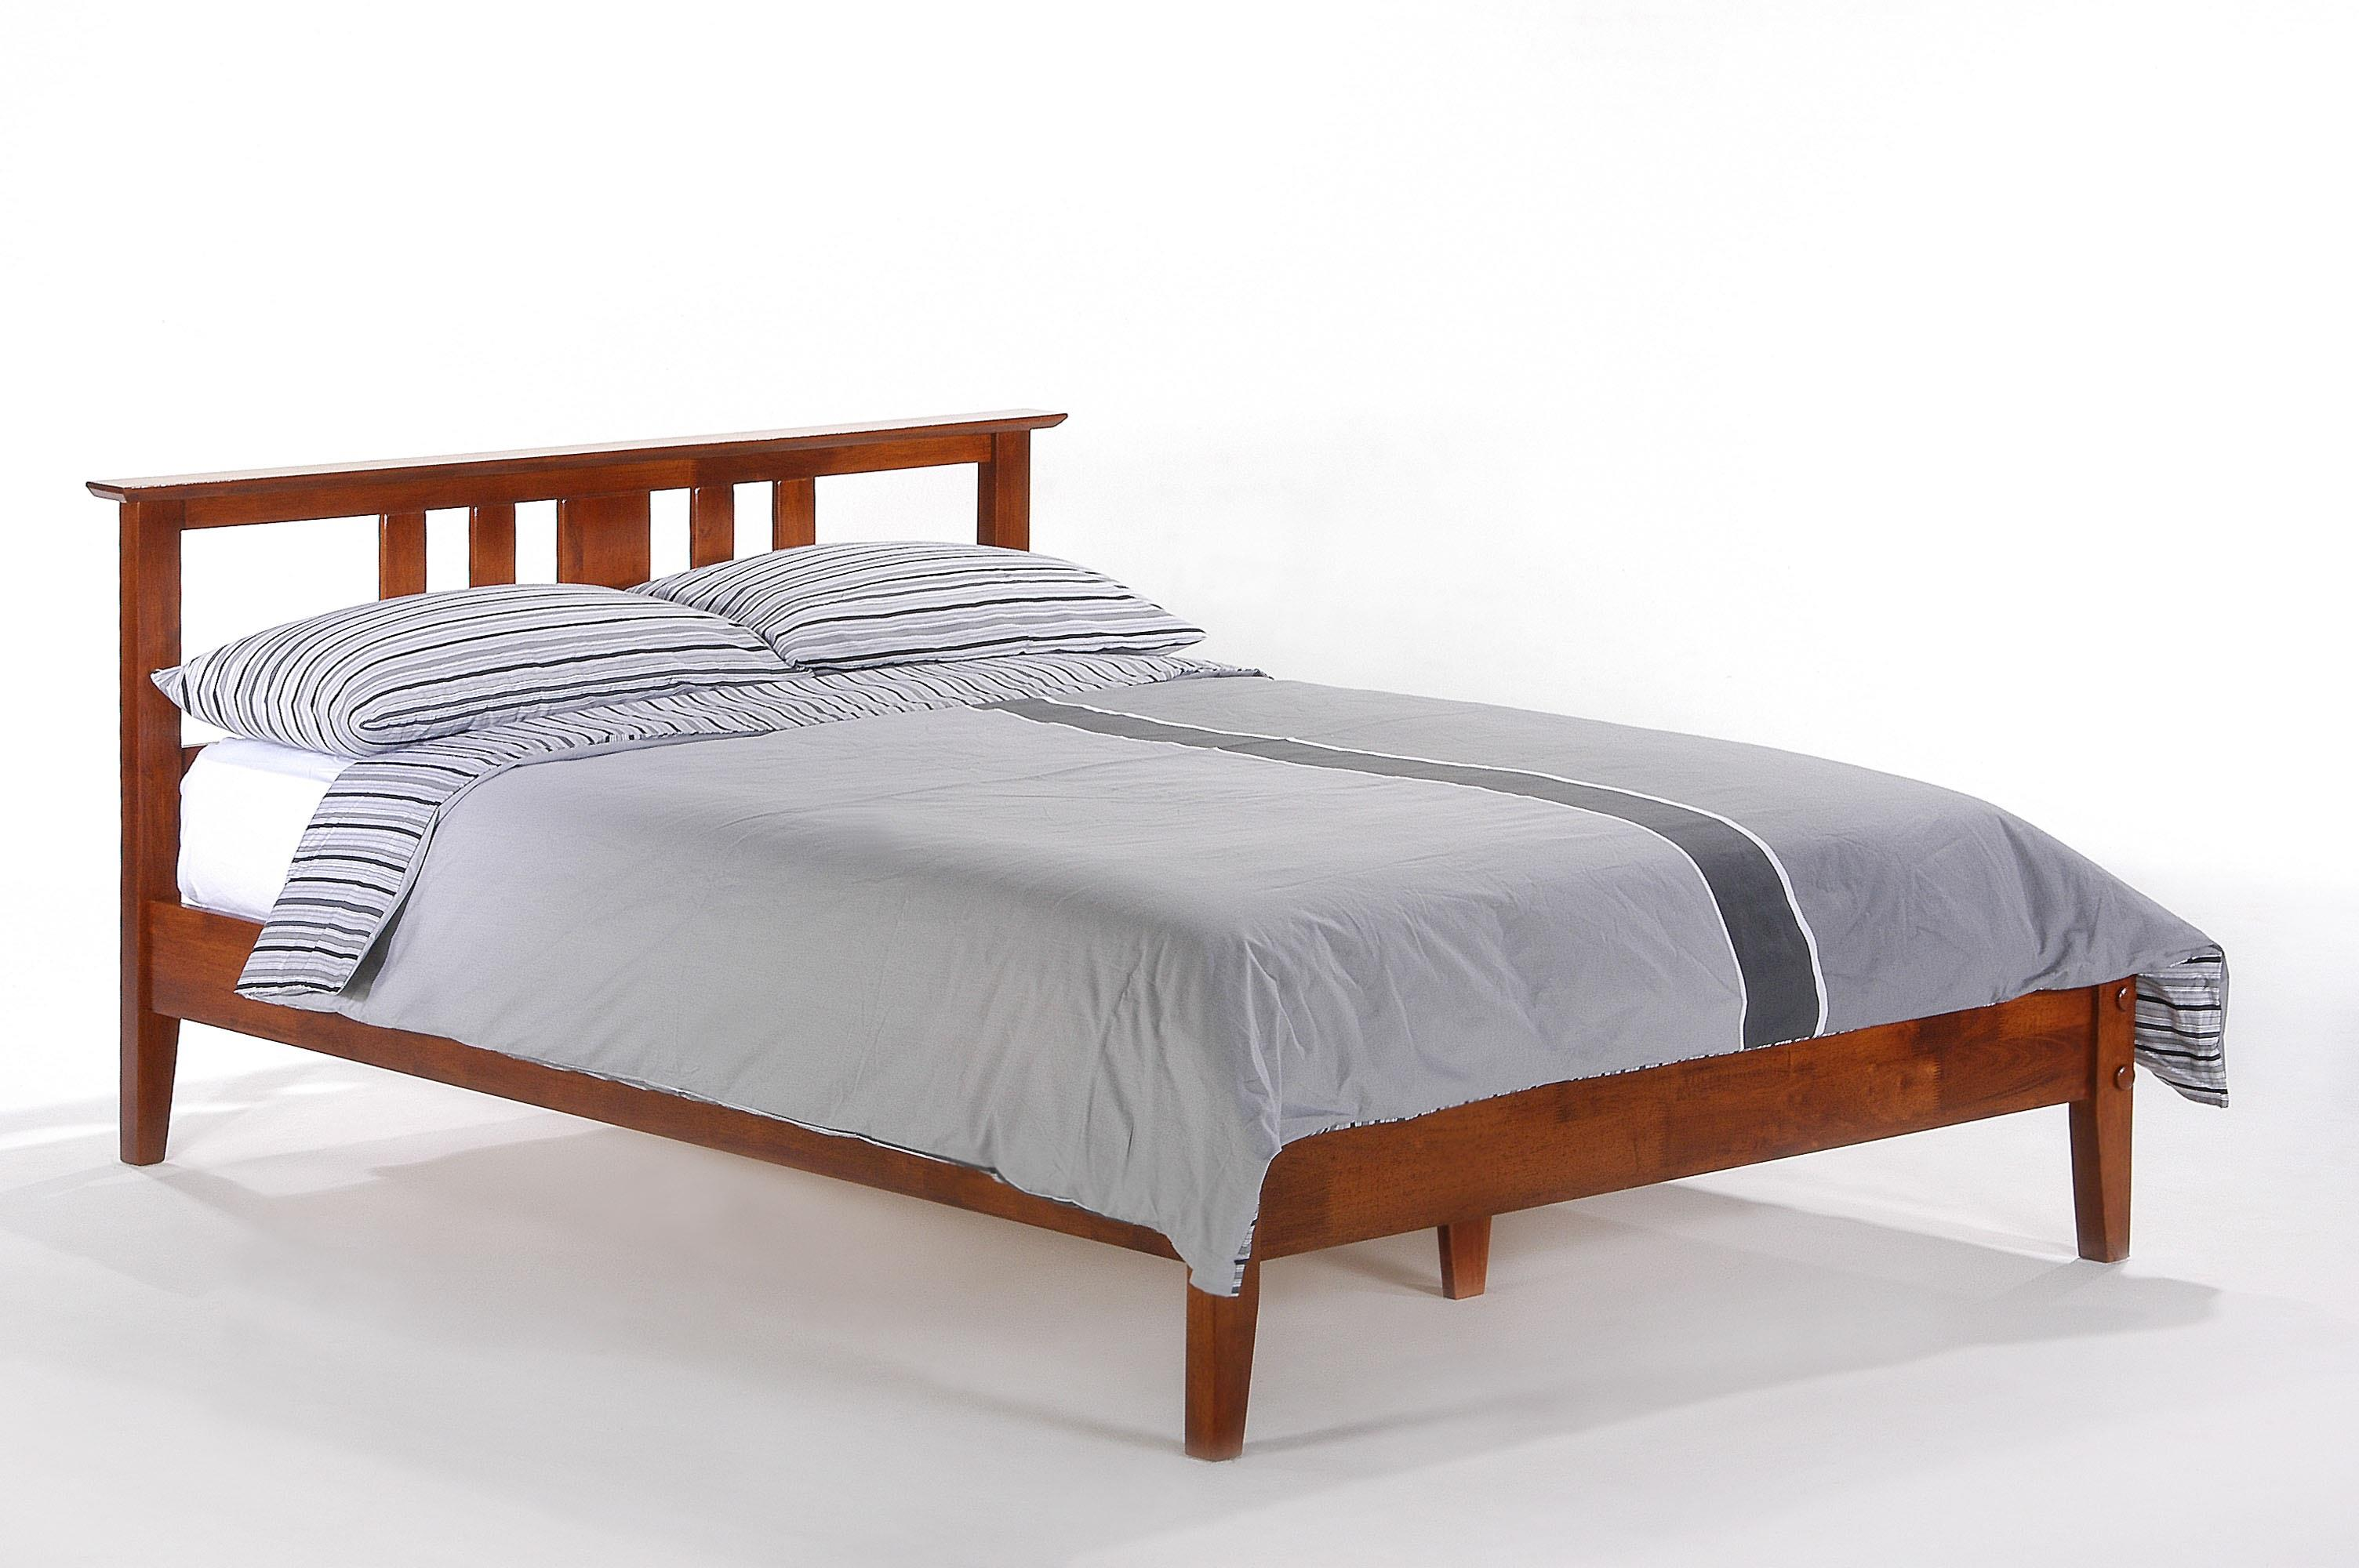 Thyme Cal King Bed by Pacific Manufacturing at SlumberWorld